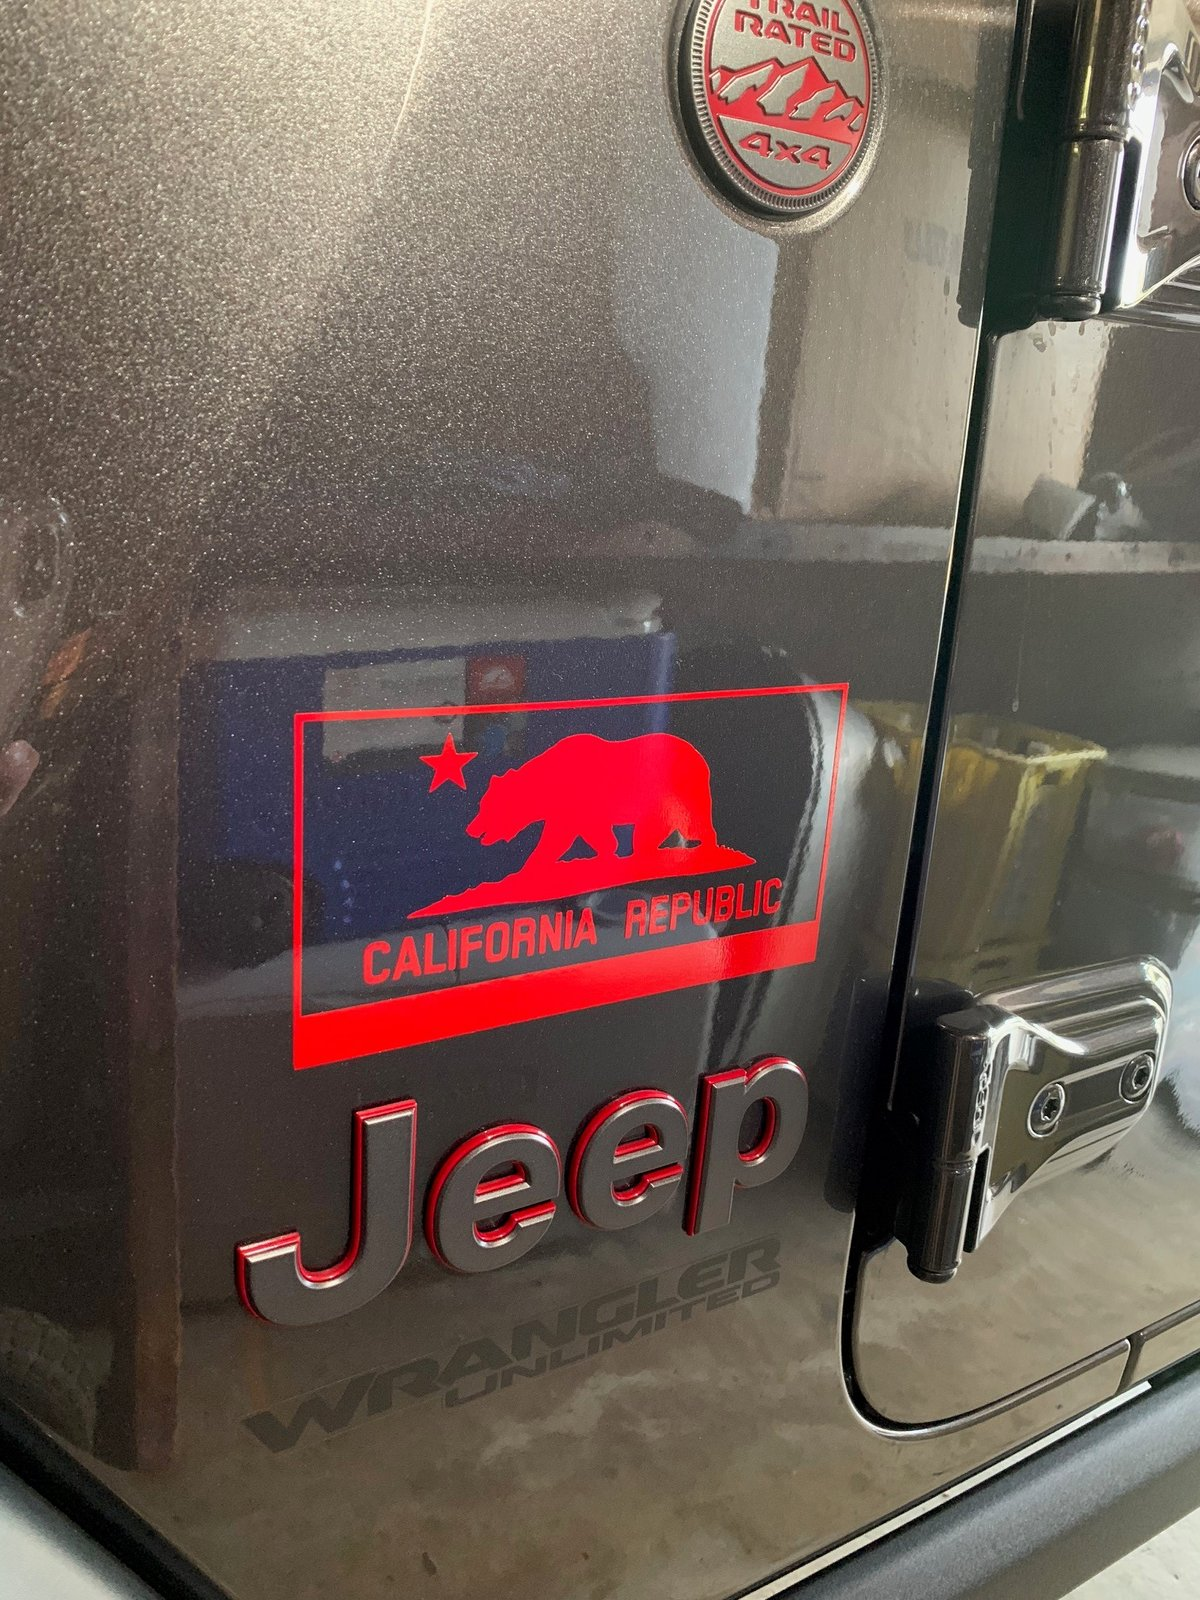 Jeep Decal.jpg